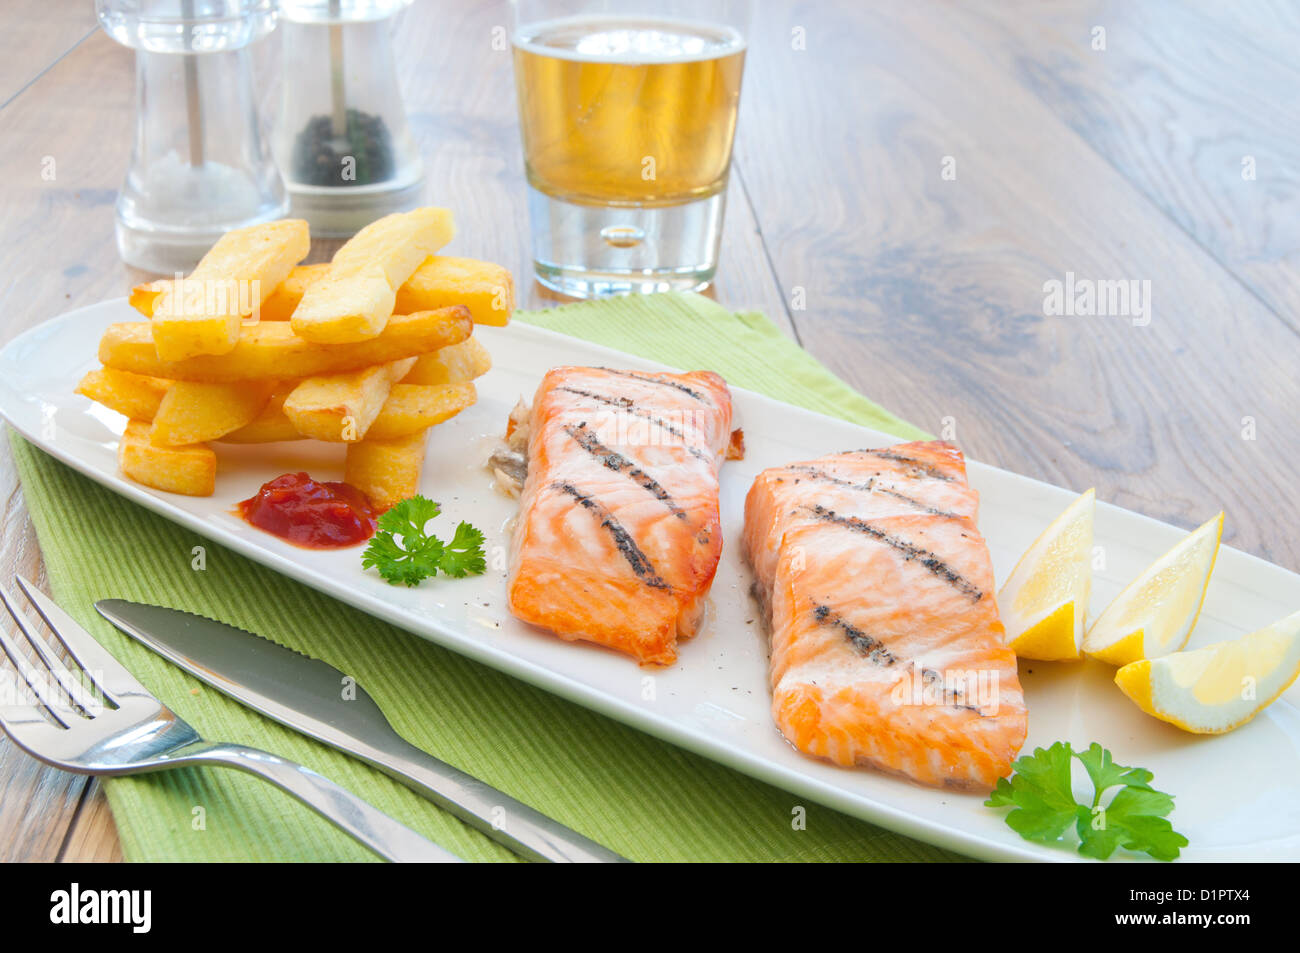 Grilled salmon fillets with chips - Stock Image